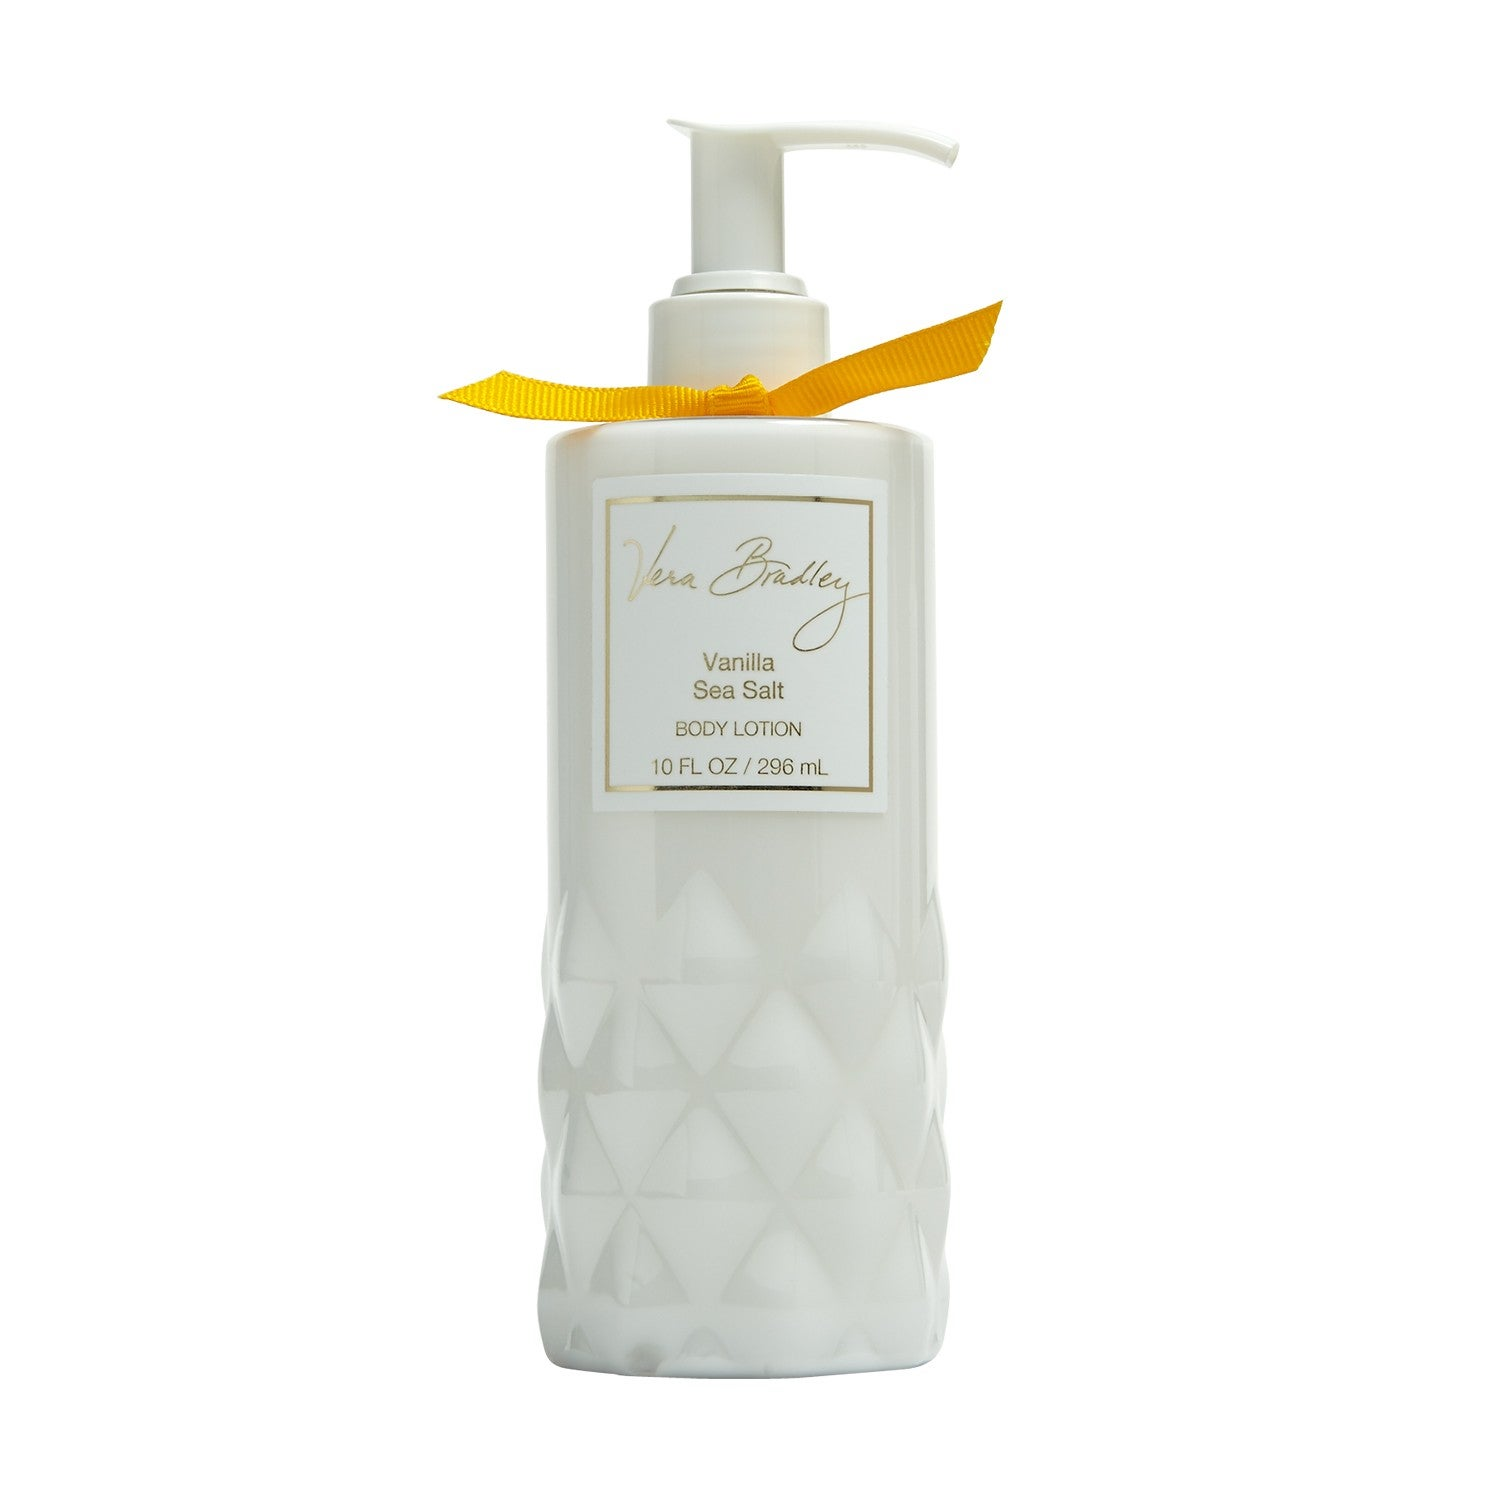 Vera Bradley Vanilla Sea Salt Body Lotion